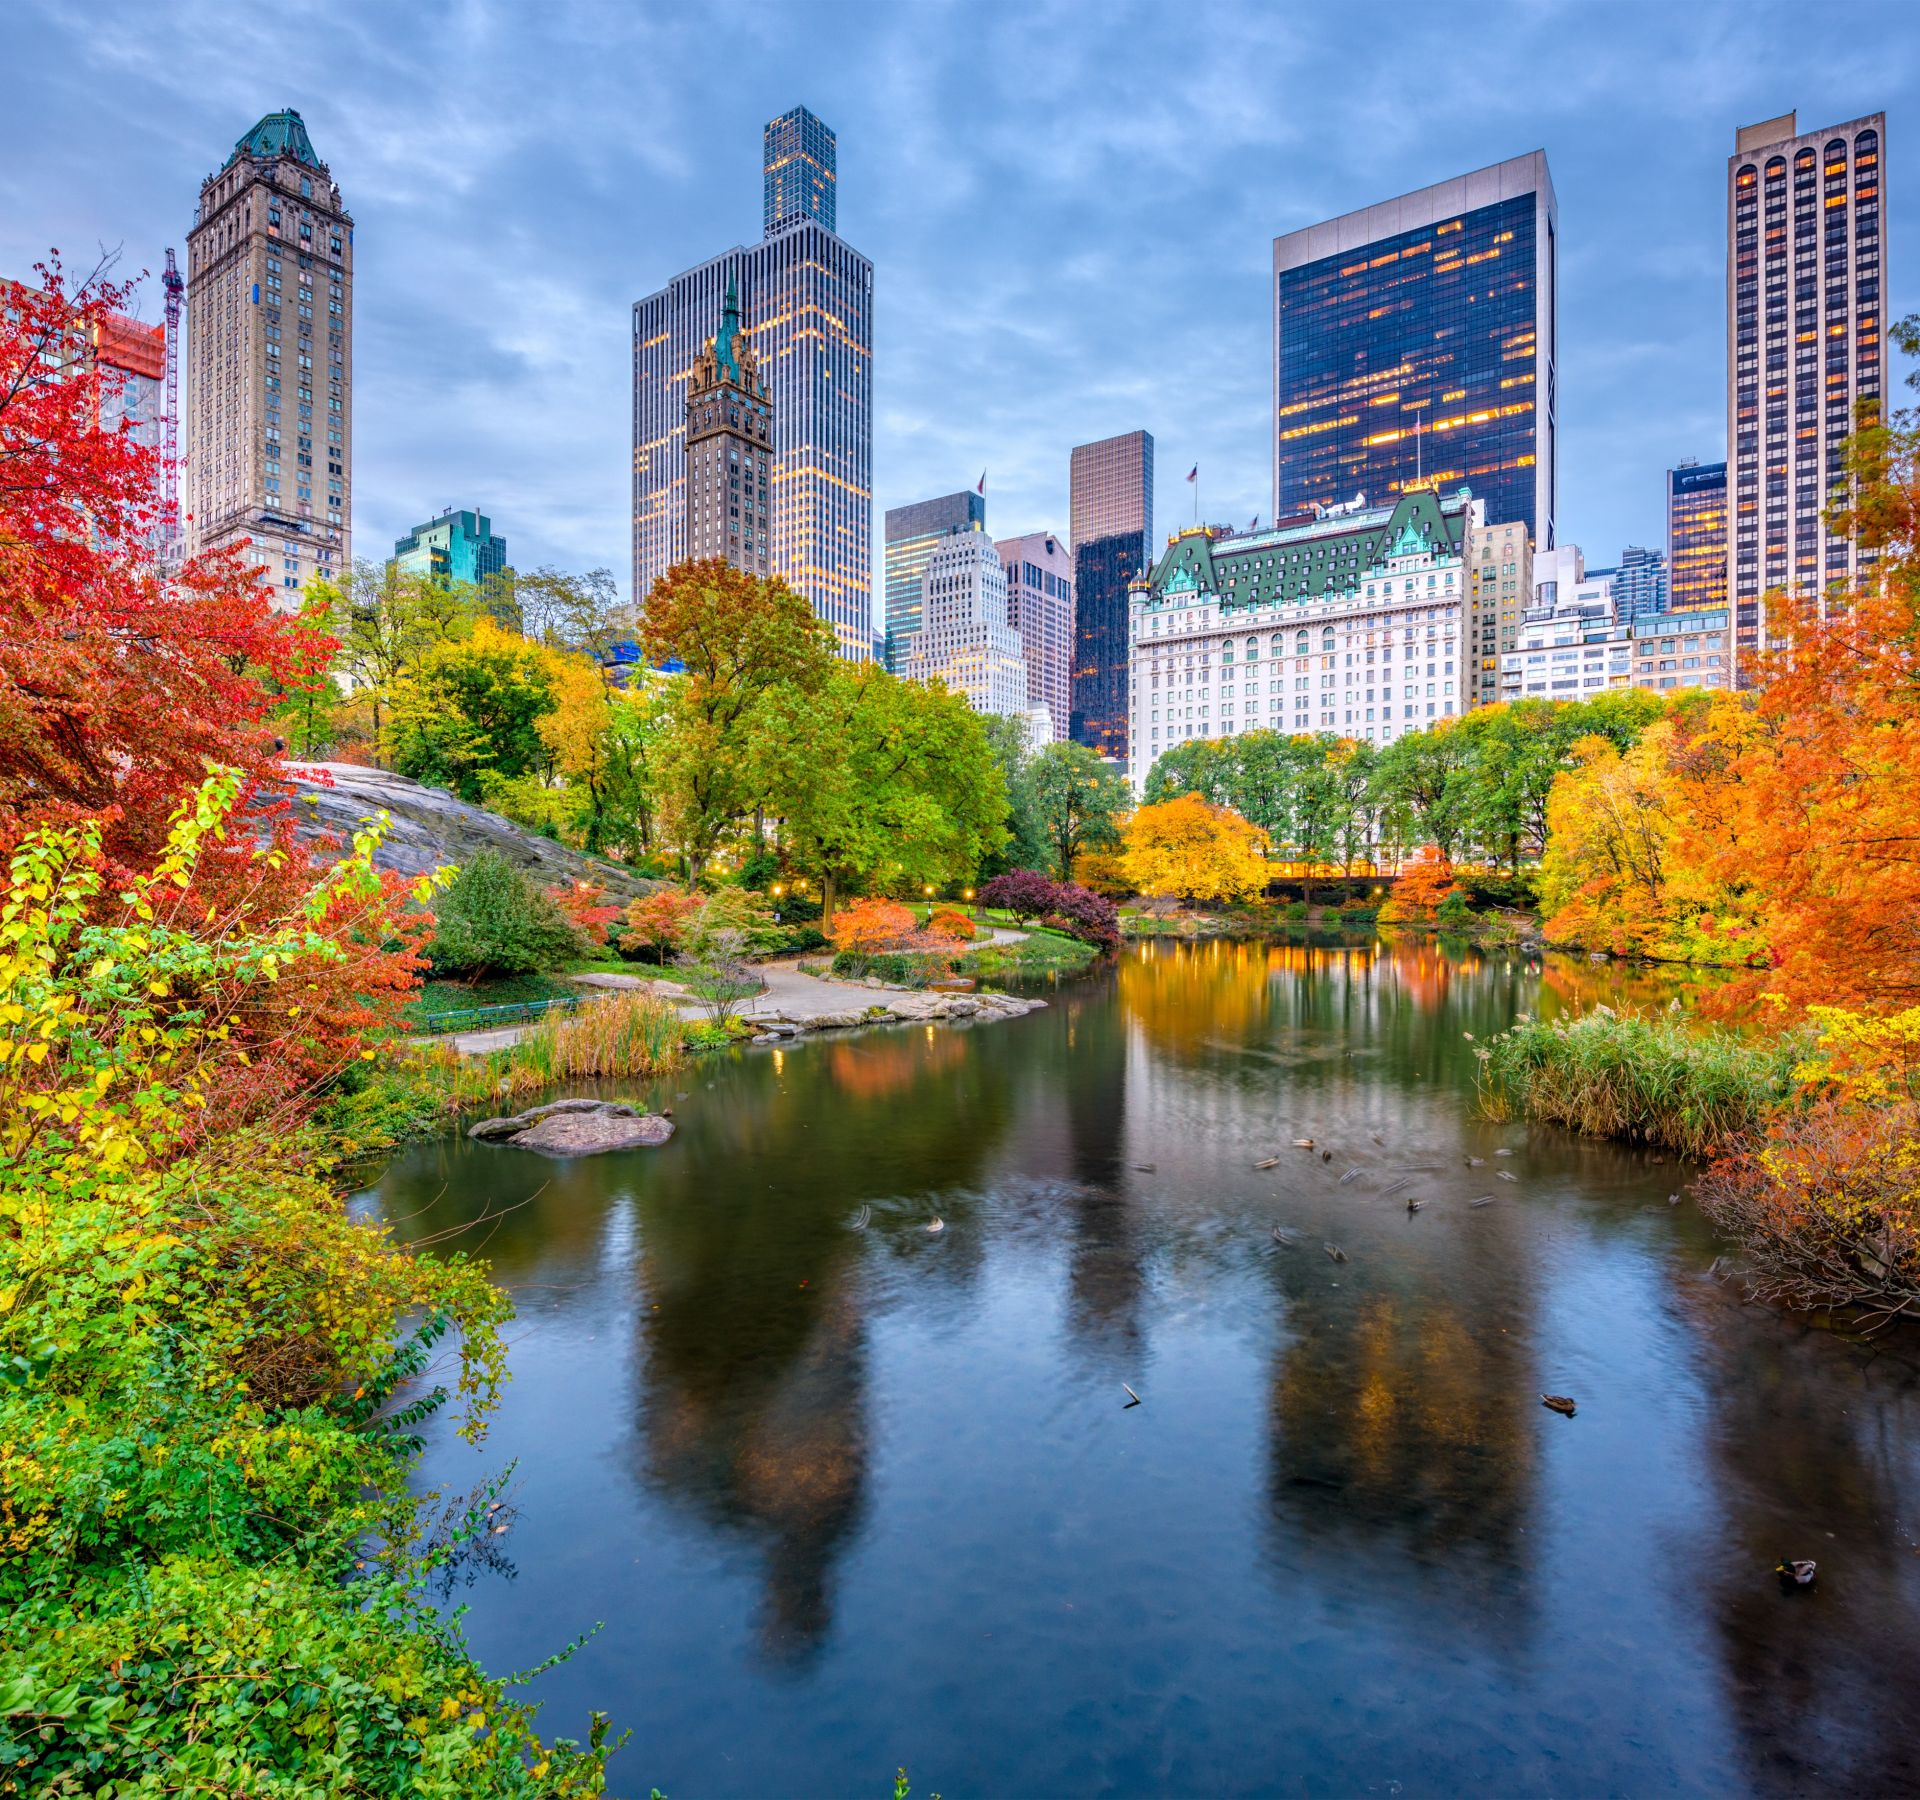 Discover the best of NYC with our Fall Limited Time Offer- 15% Off!